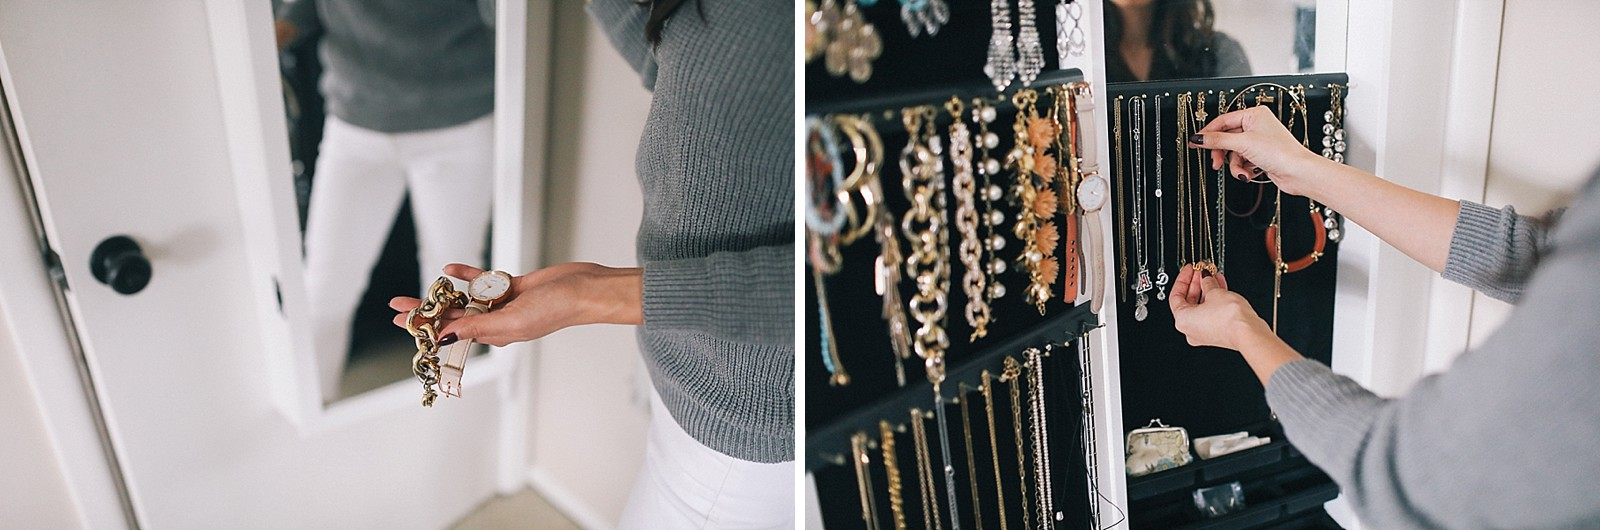 behind the door jewelry cabinet organization holds many bracelets earrings and necklaces